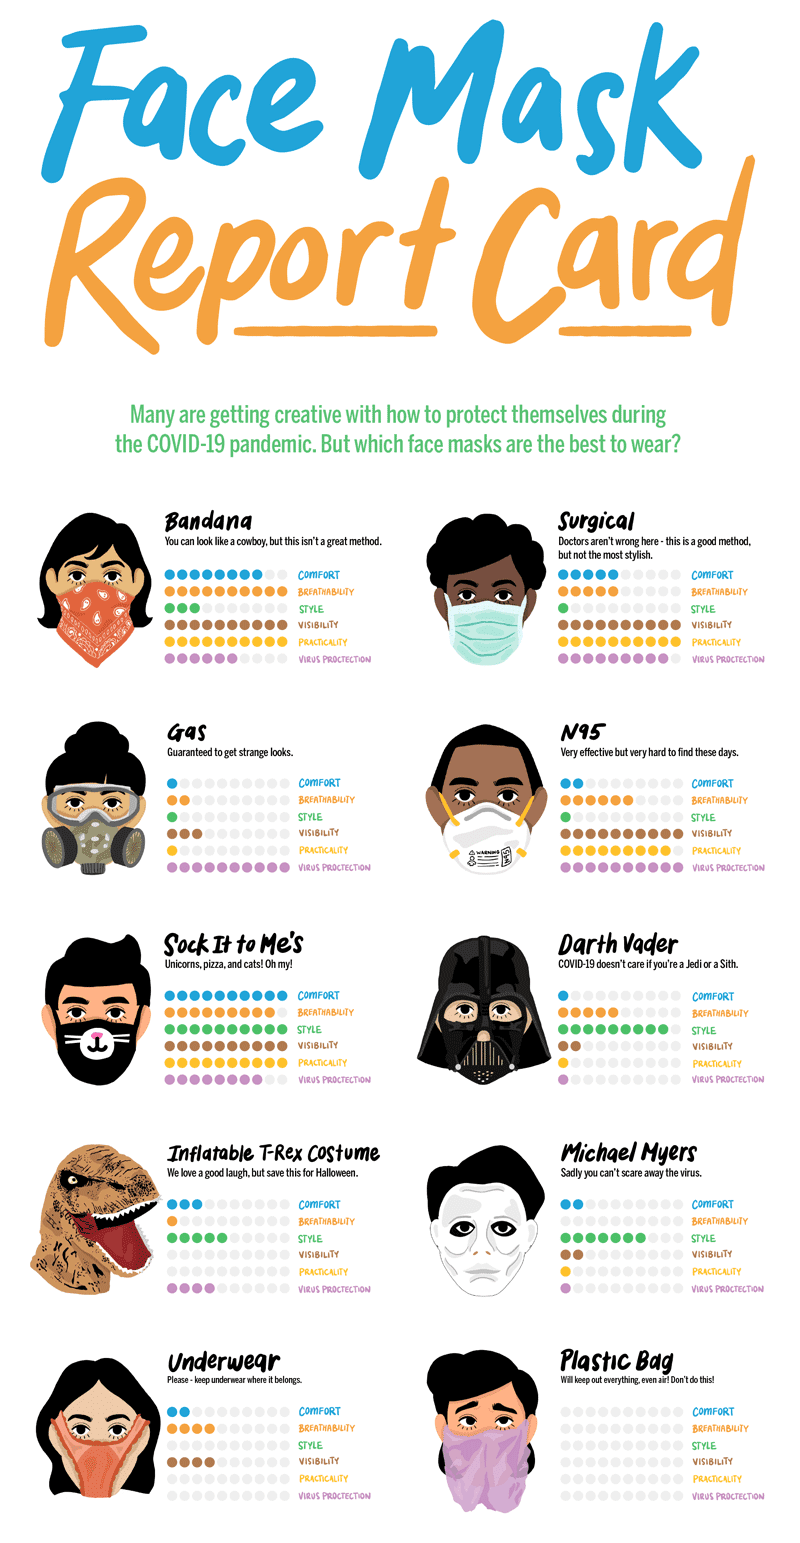 Face Mask Report Card #infographic